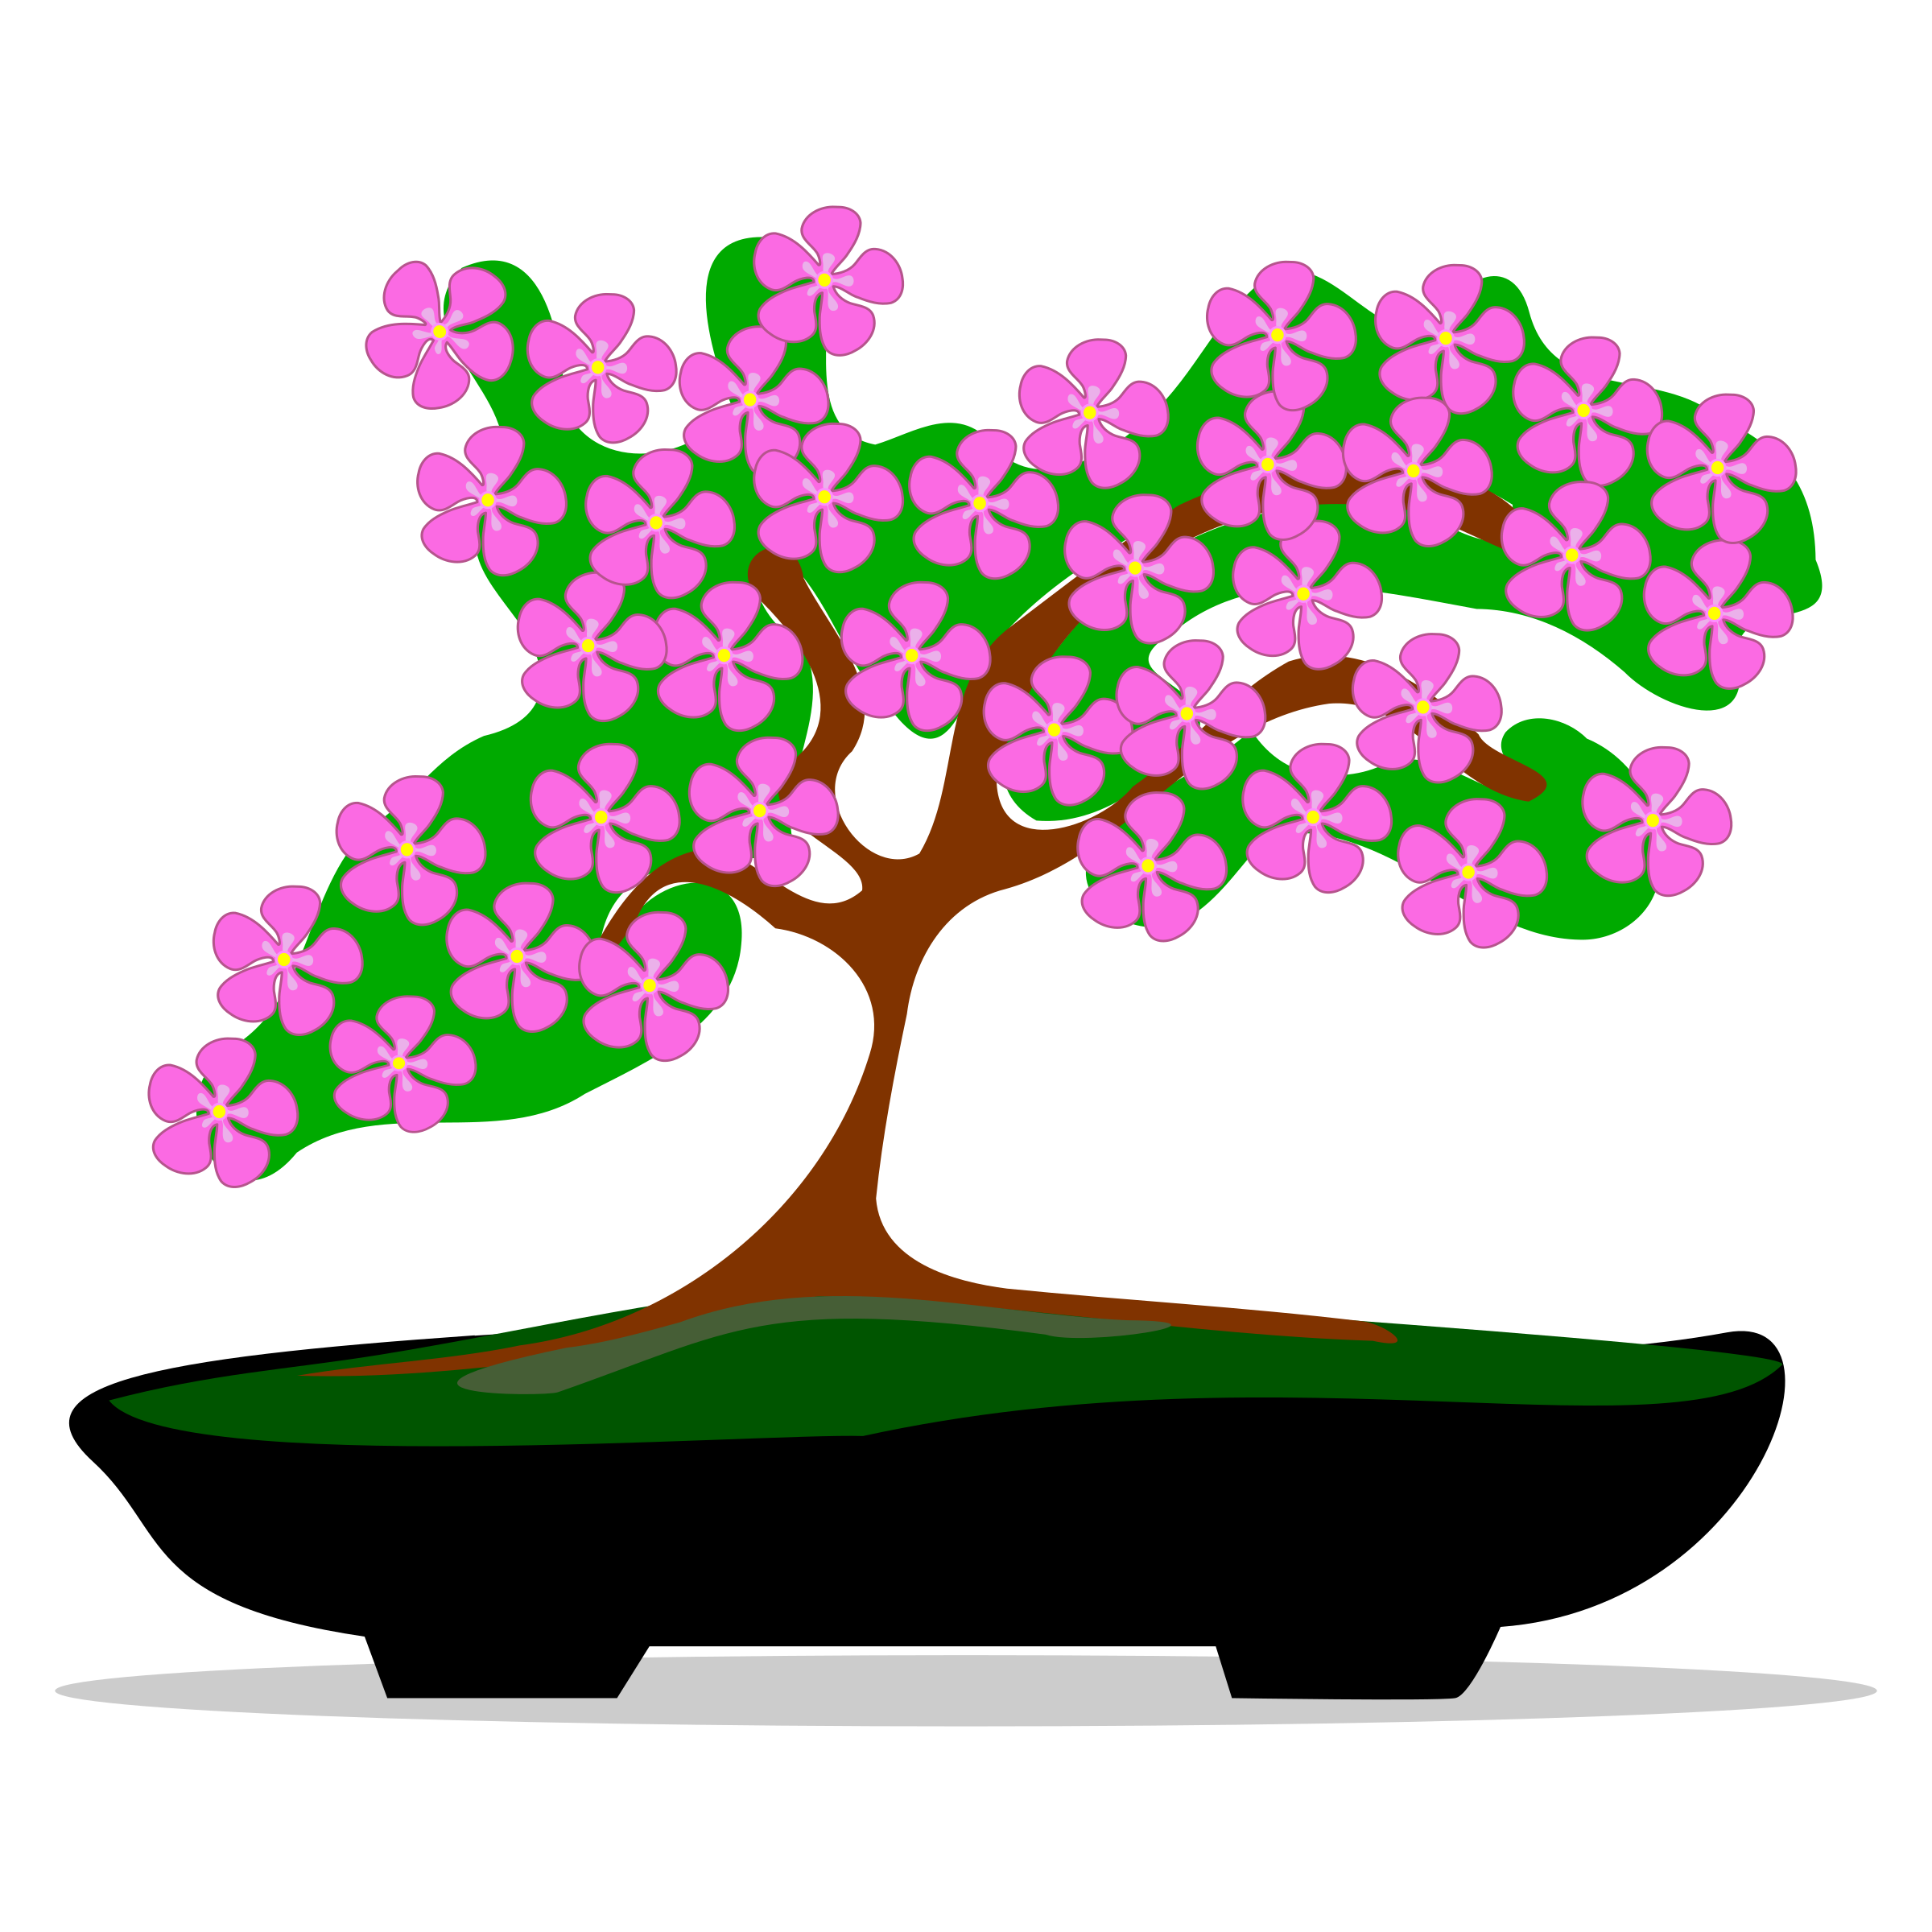 Bonsai clipart Bonsai 01 bonsai 01 Clipart